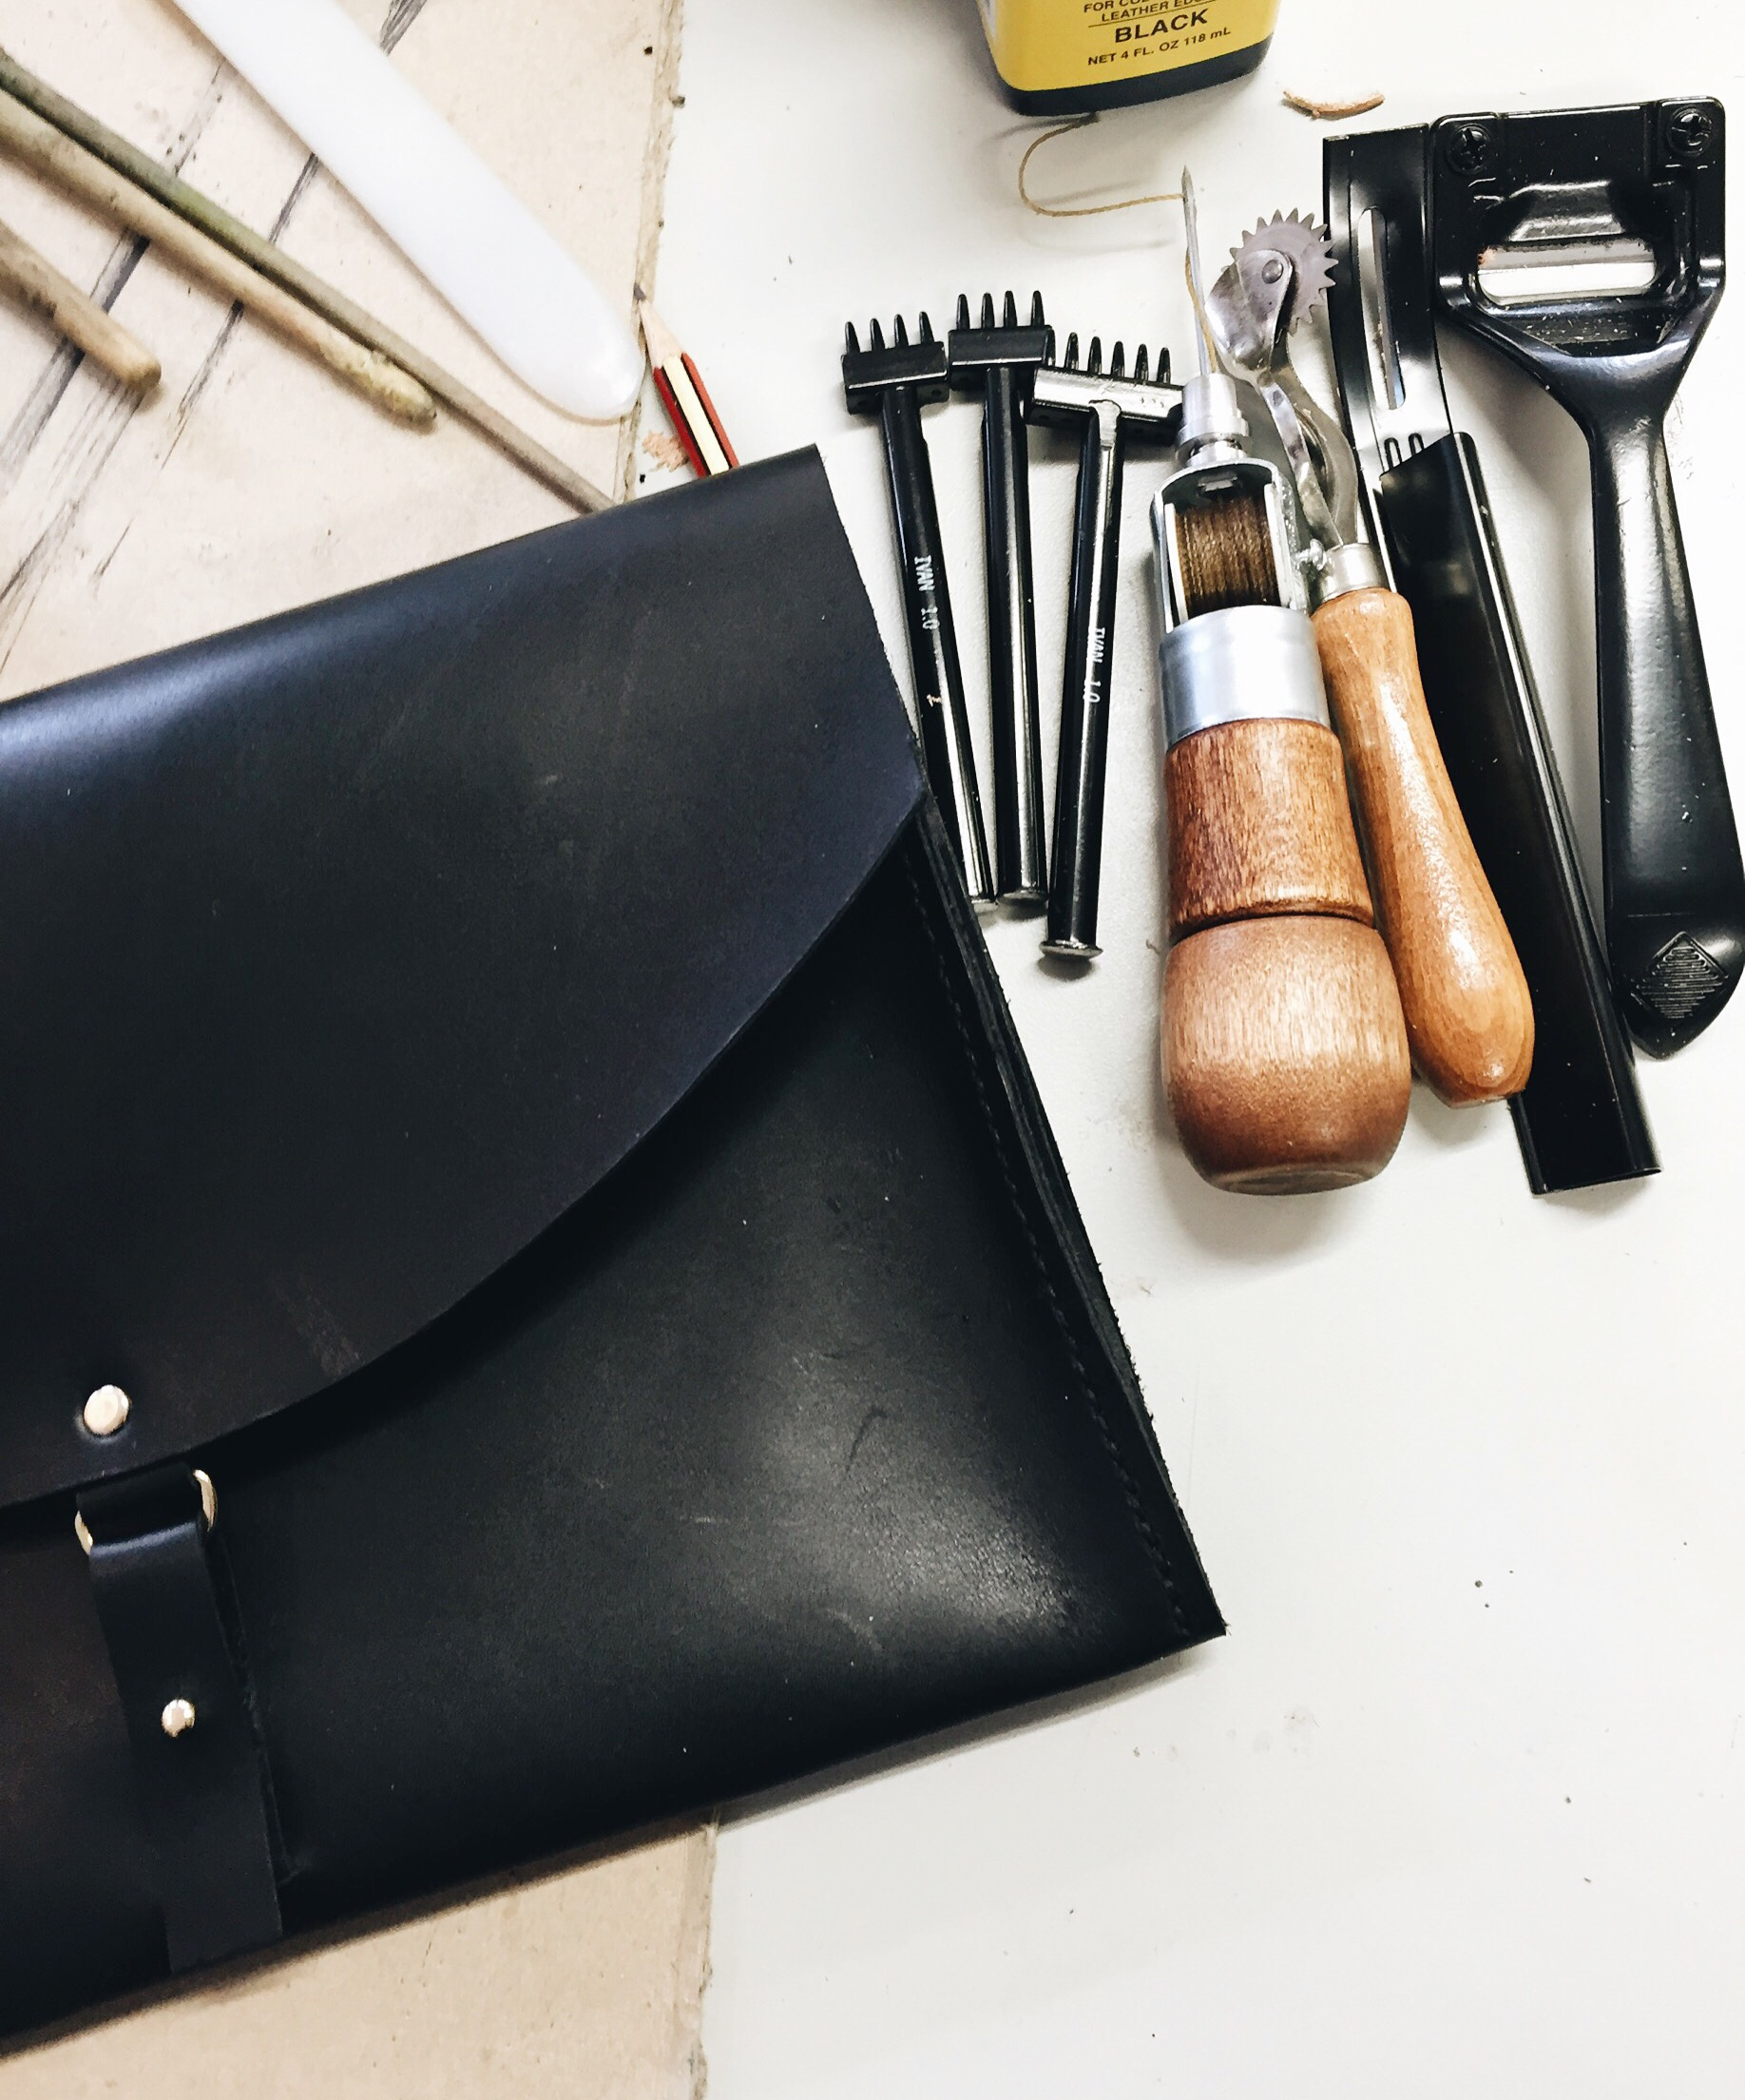 leder workshop wochenende leather workshop leather bags diy ledertaschen selbser nähen